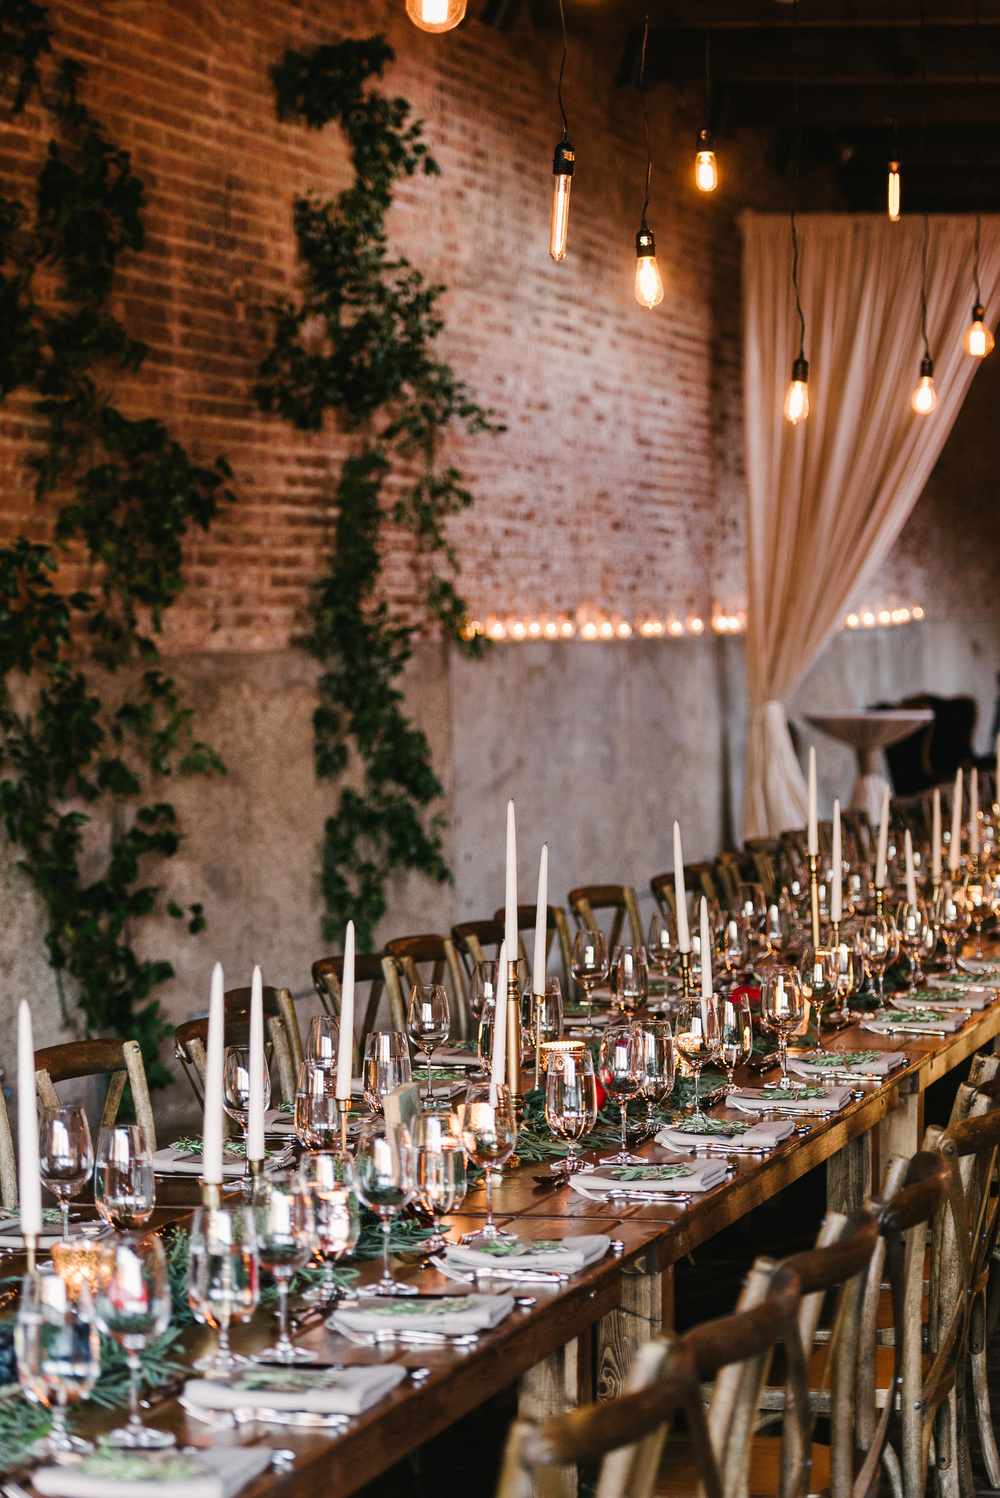 farm table with garland for wedding.jpg